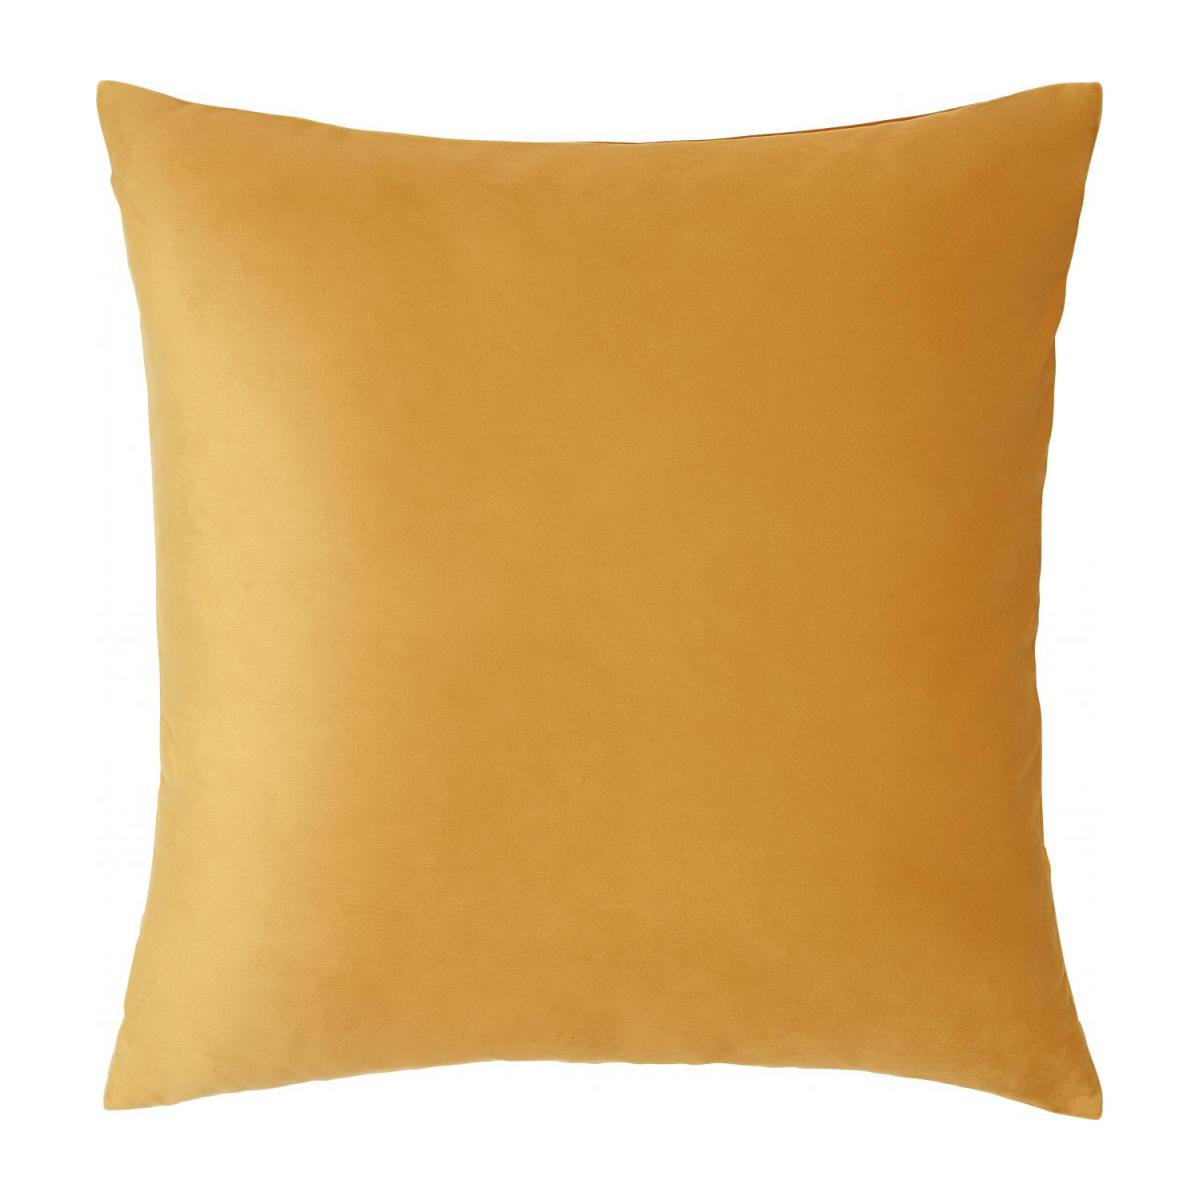 Coussin - Patchwork - Jaune - design by Floriane Jacques n°3